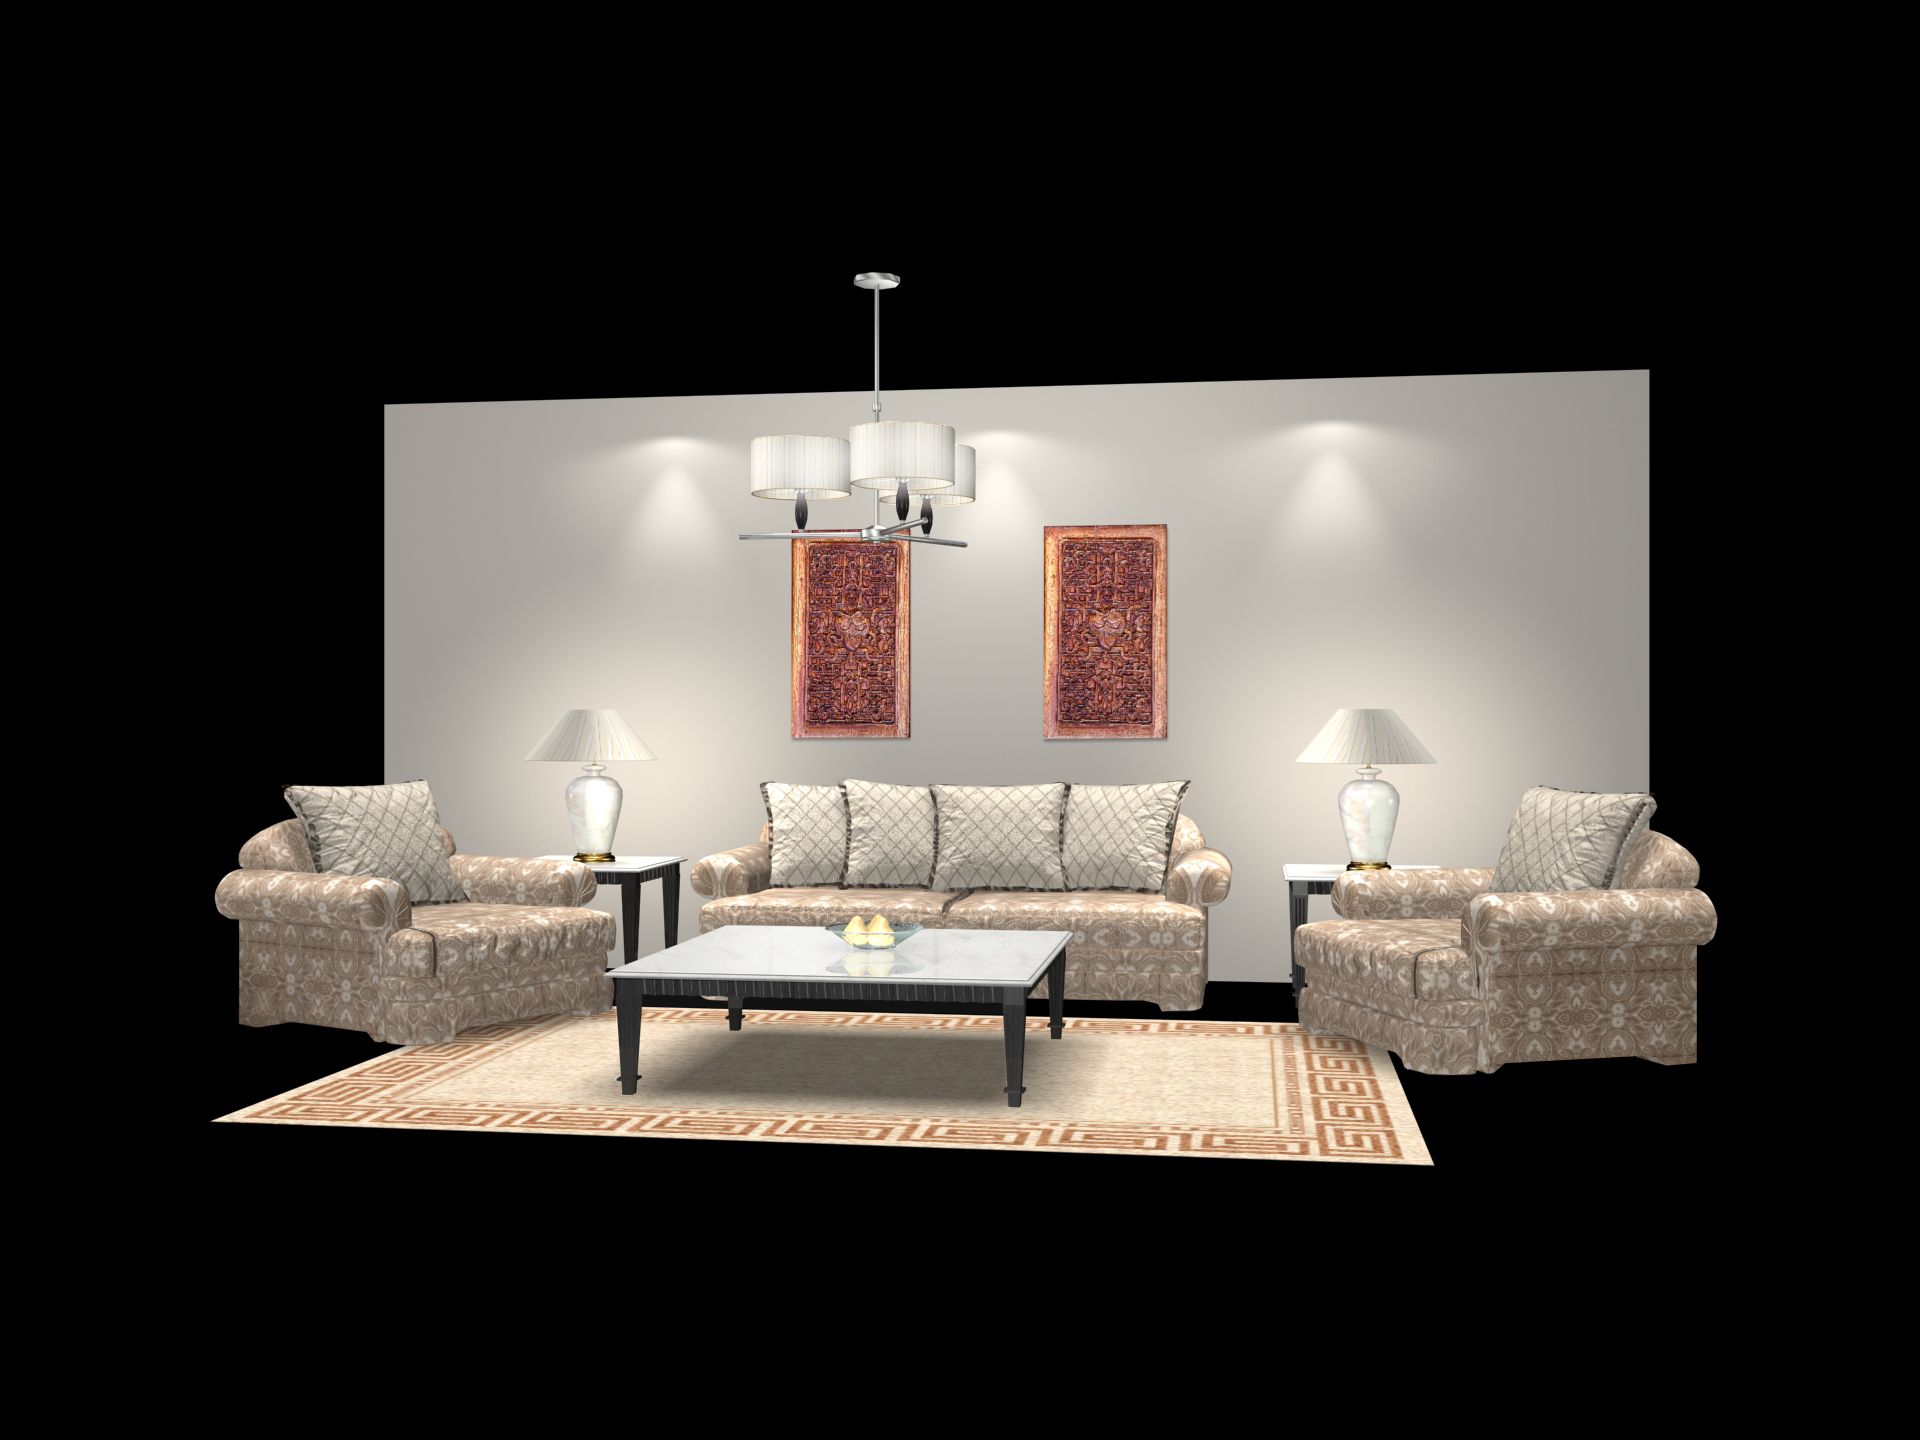 Muebles sas 001 3d model download free 3d models download for Muebles de oficina 3d model